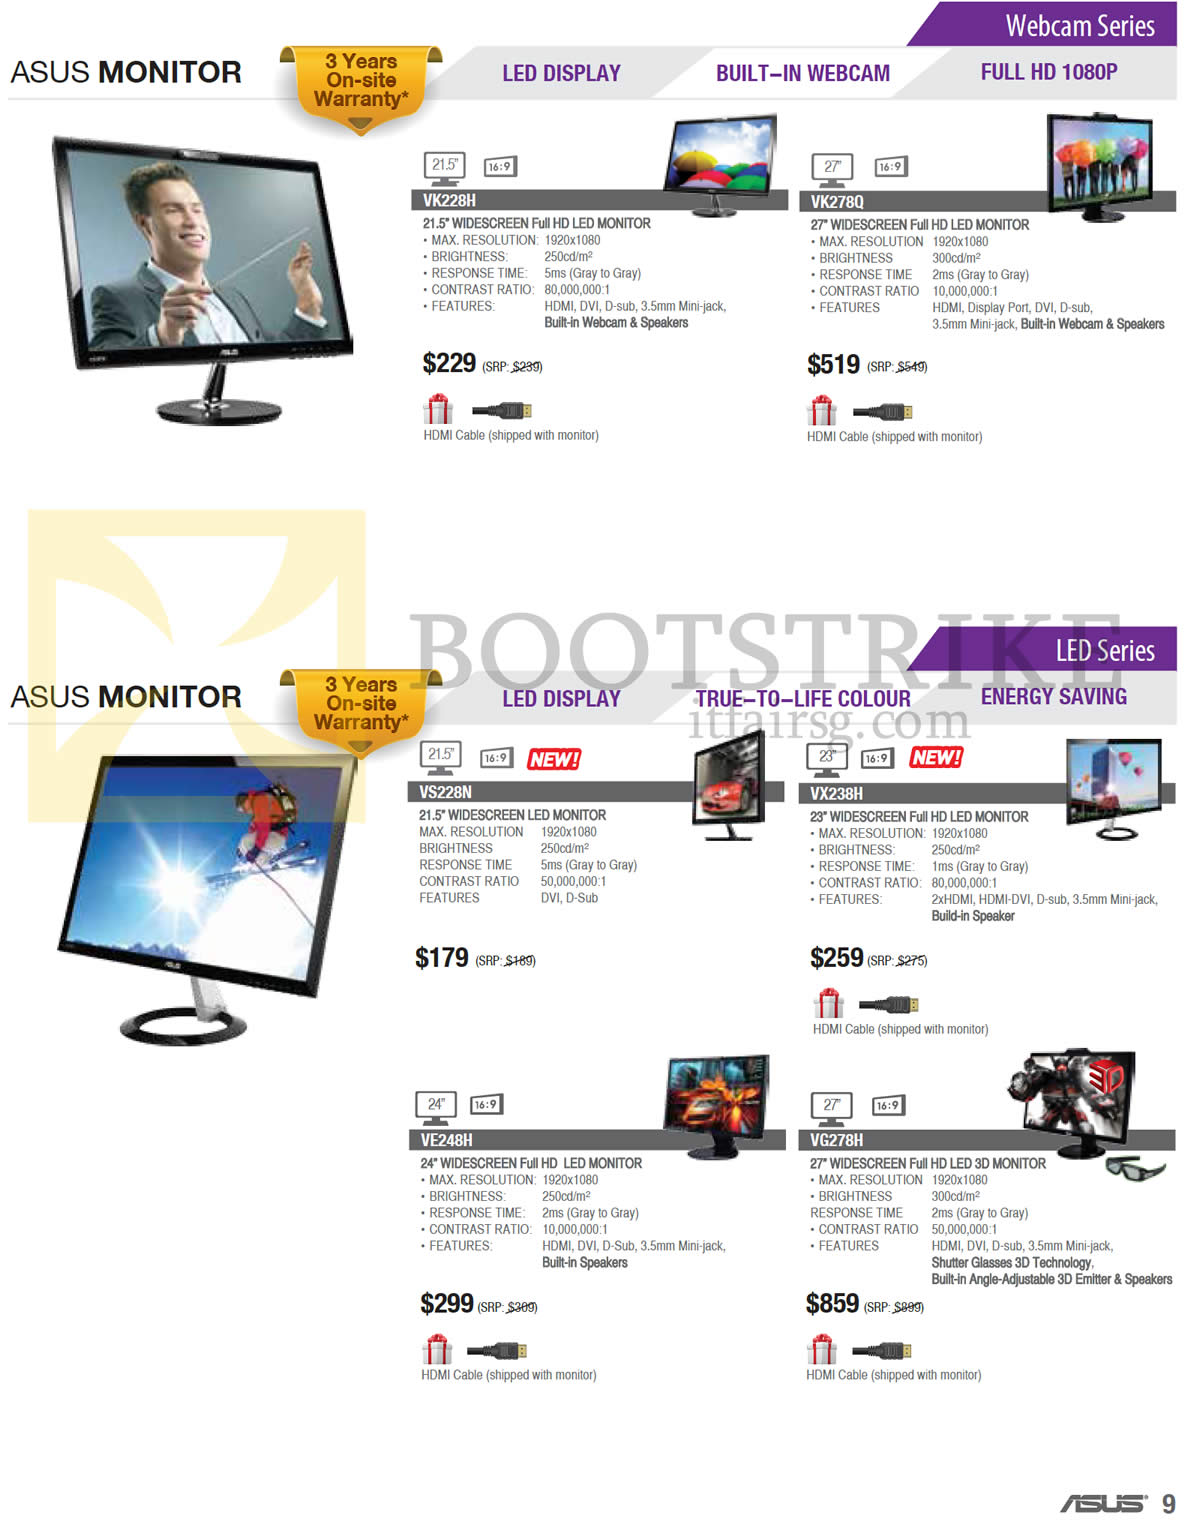 PC SHOW 2013 price list image brochure of ASUS Monitors Webcam VK228H, VK278Q, LED VS228N, VX238H, VE248H, VG278H